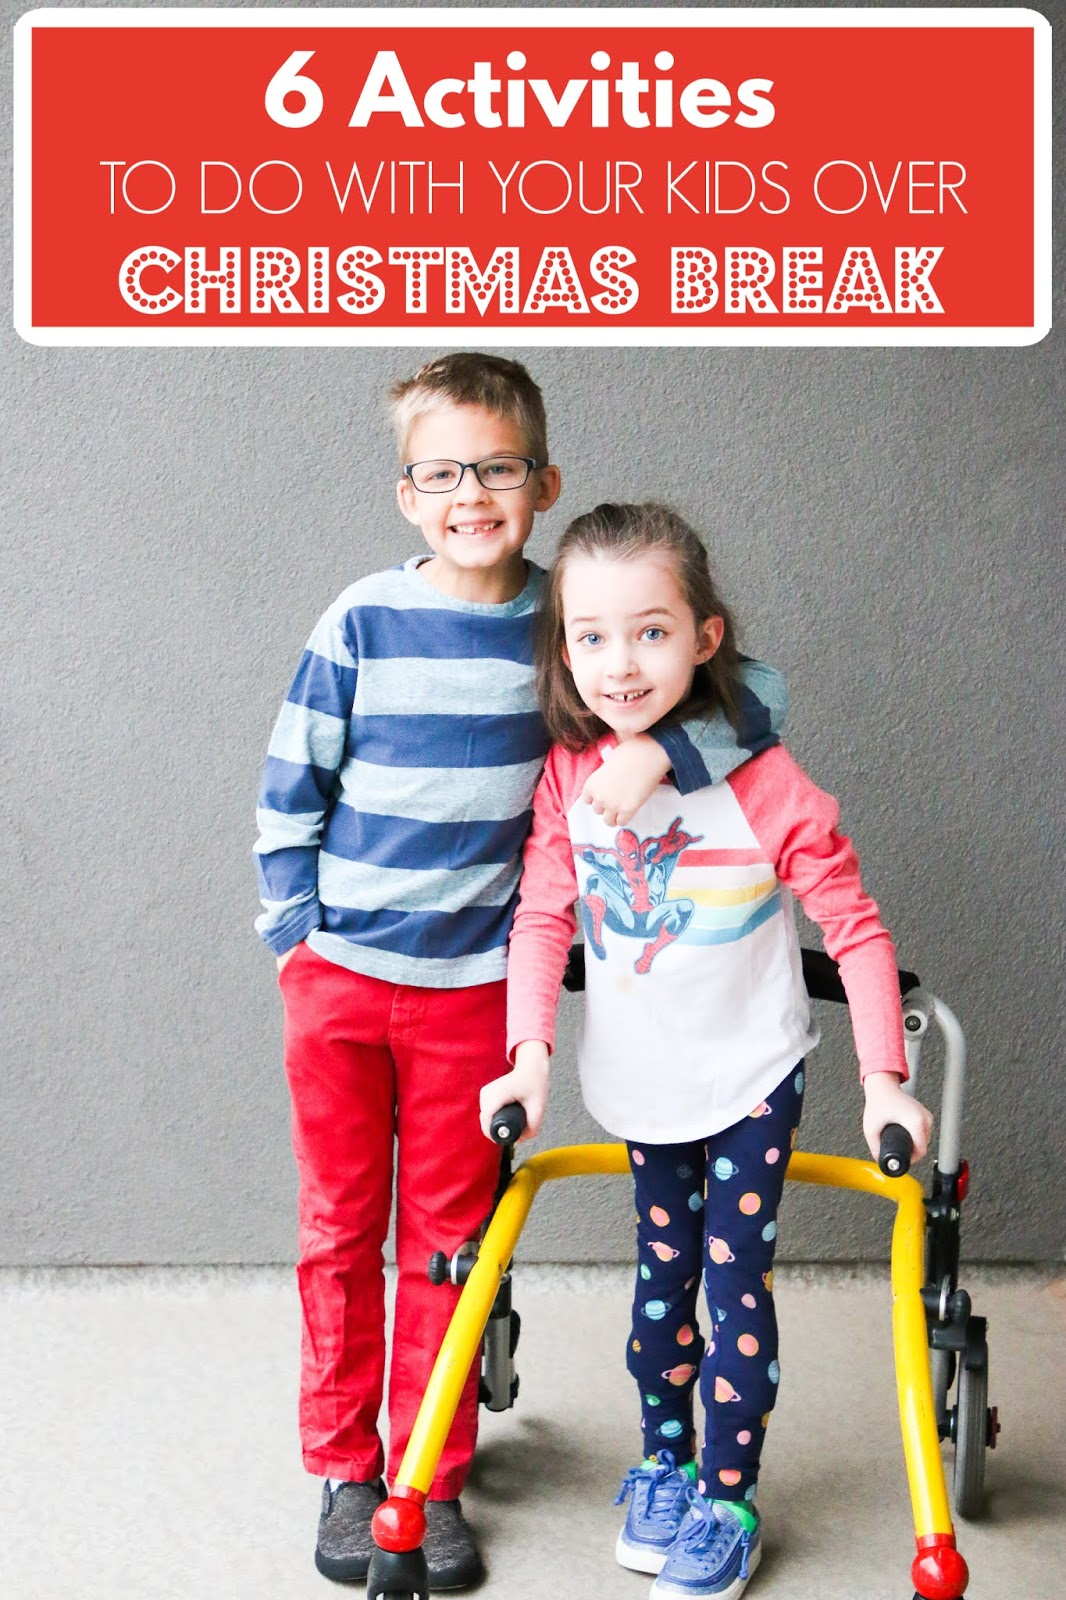 Winter break activities near me. Winter break ideas for college students. Things to do over break with friends. Winter activities for kids. Winter vacation activities. Winter break ideas for families. Winter break camps near me. Winter break activities for middle schoolers.